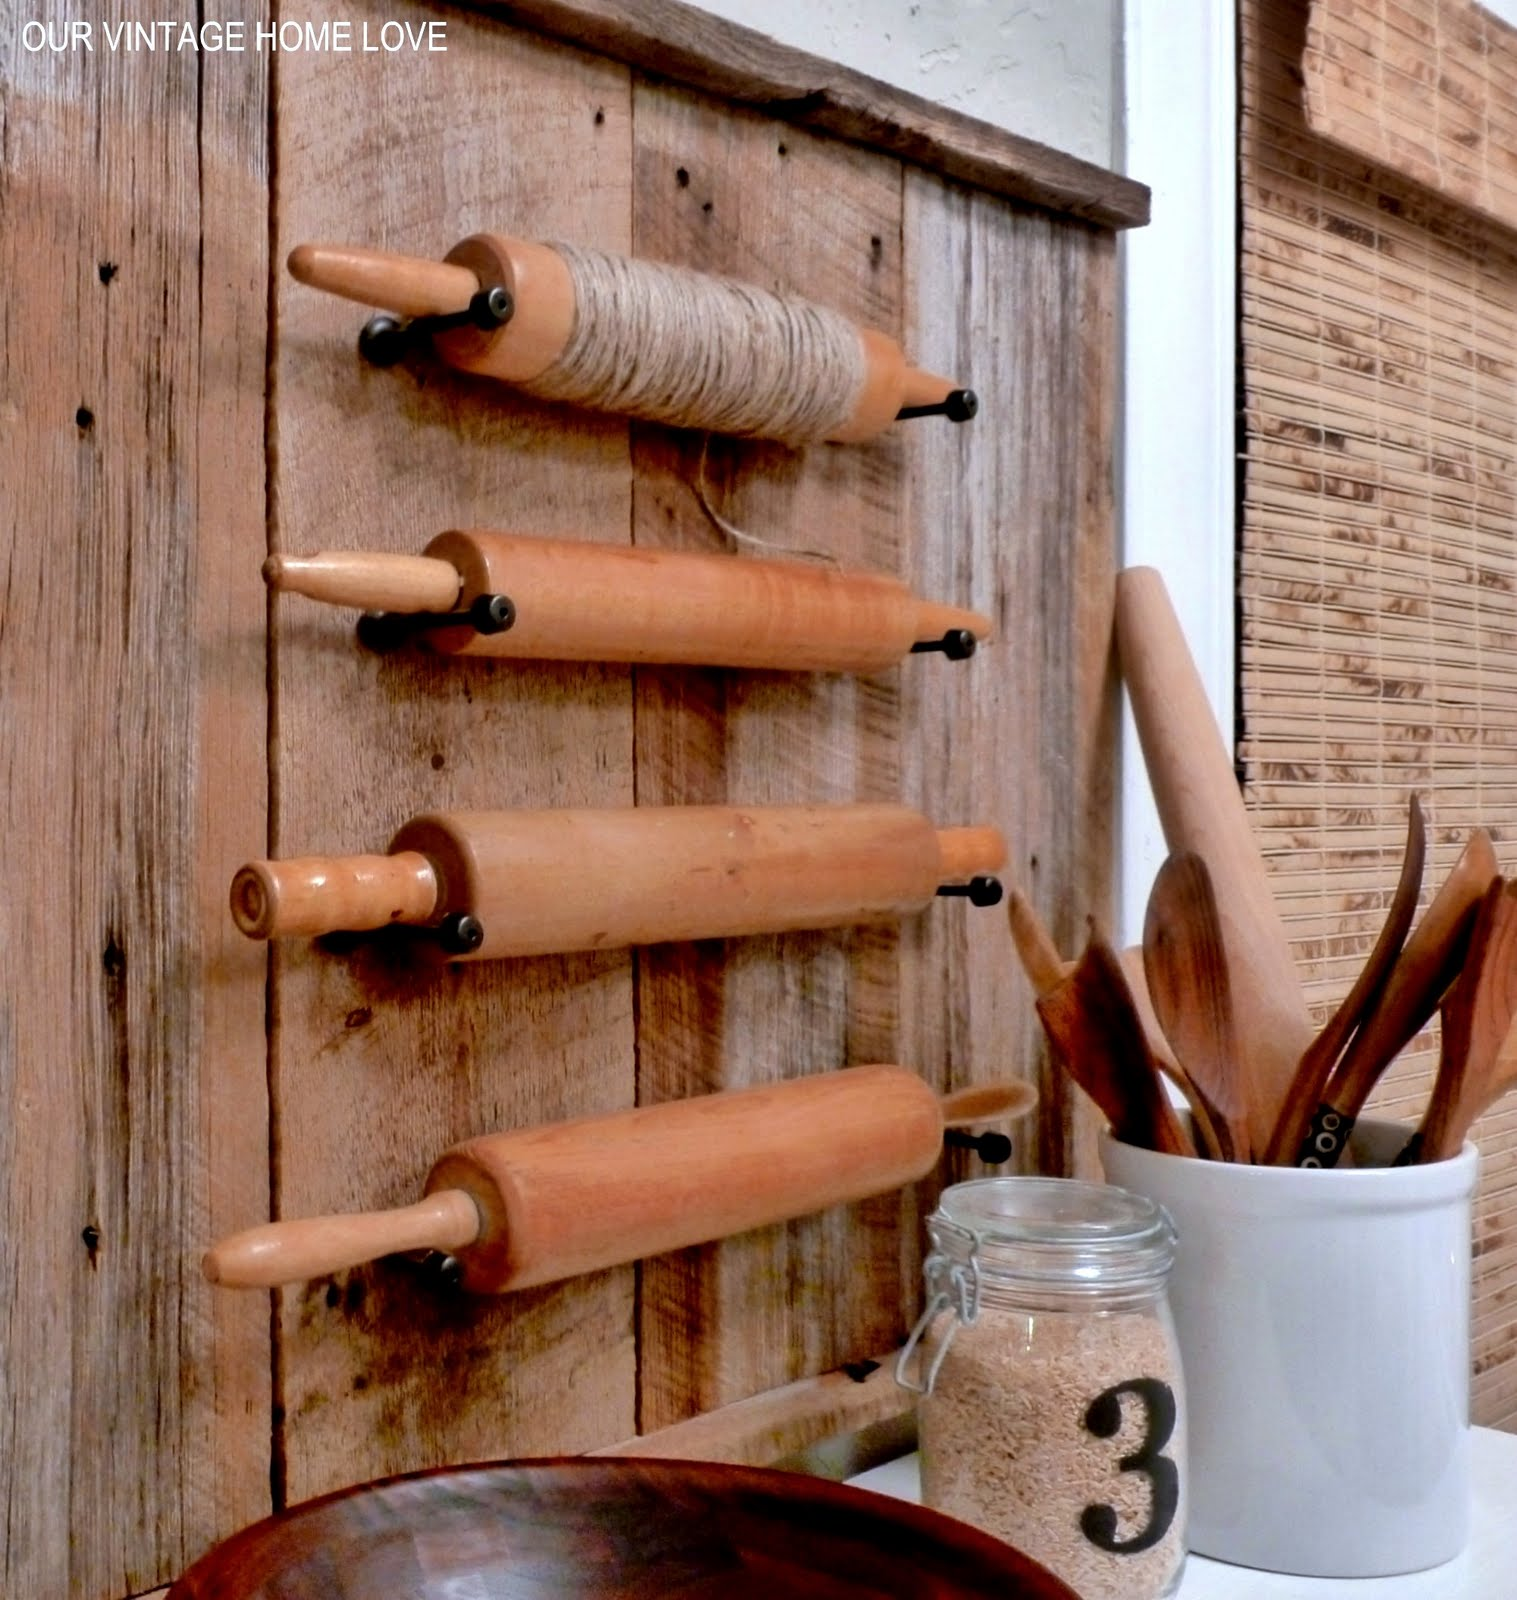 Our Vintage Home Love Rolling Pins